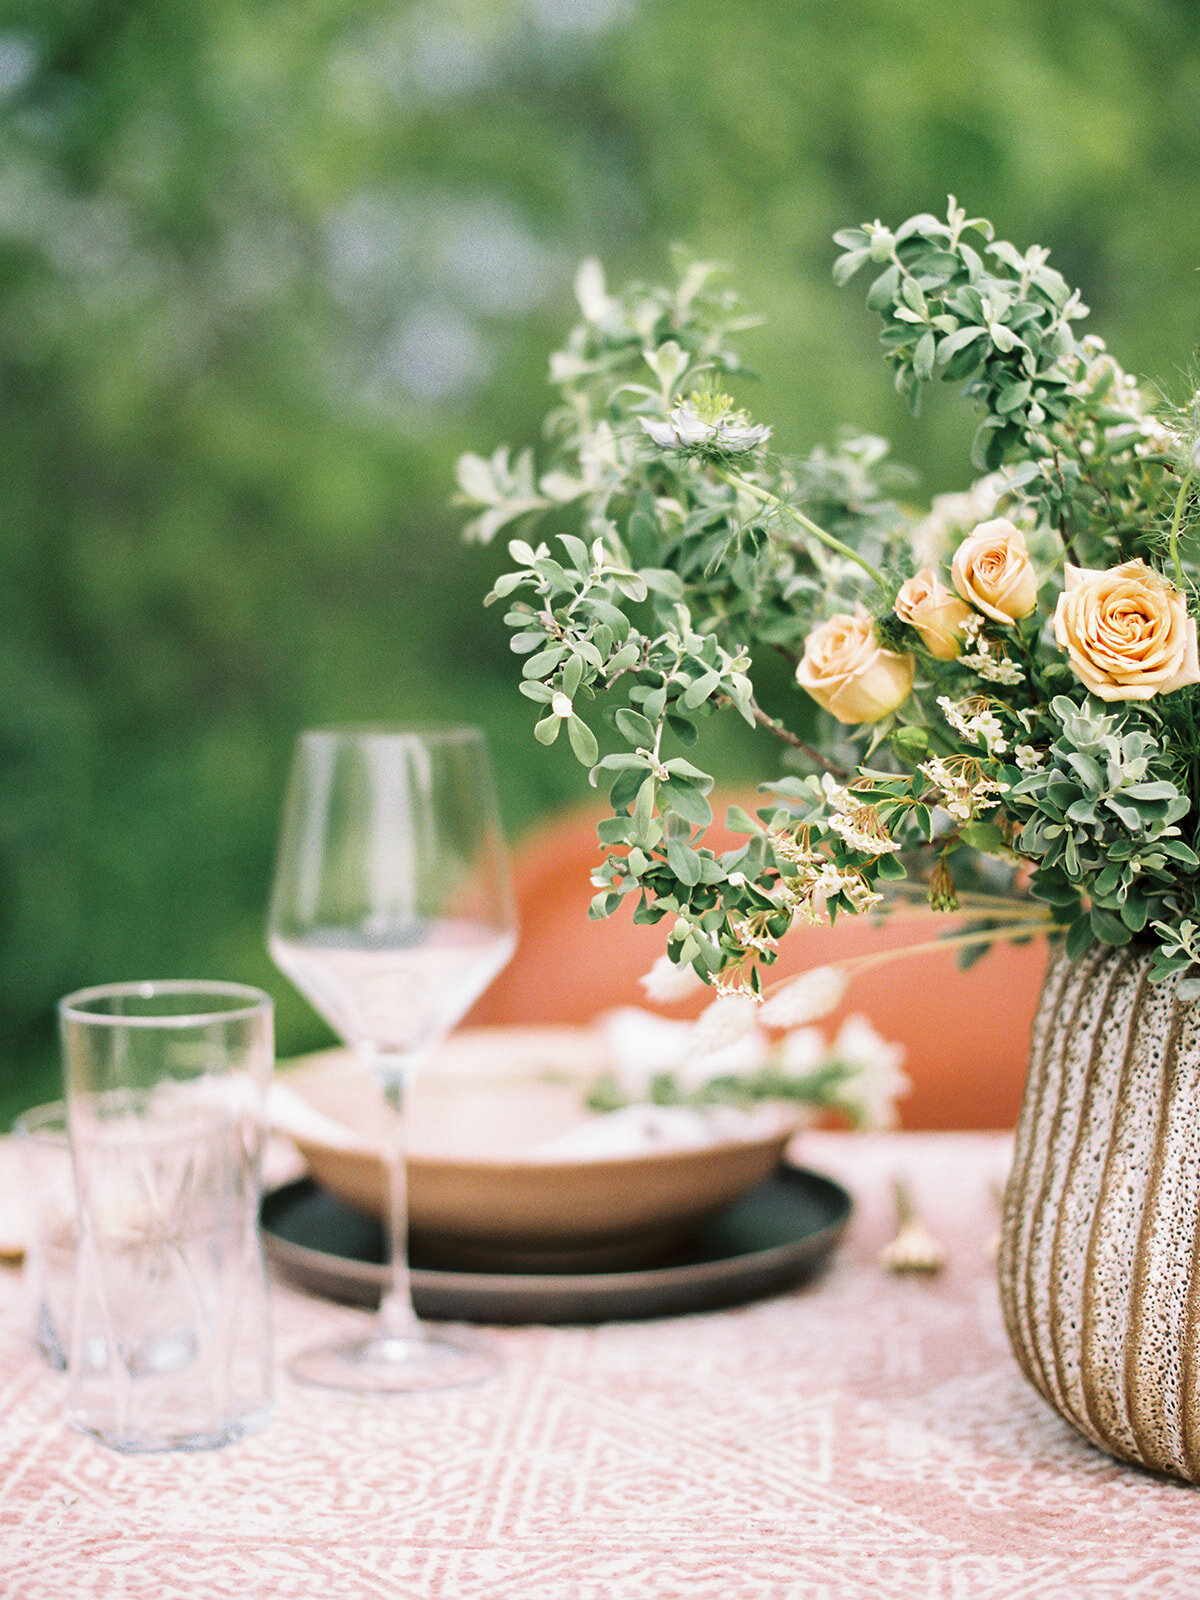 Countryside Table Wedding Peach colors